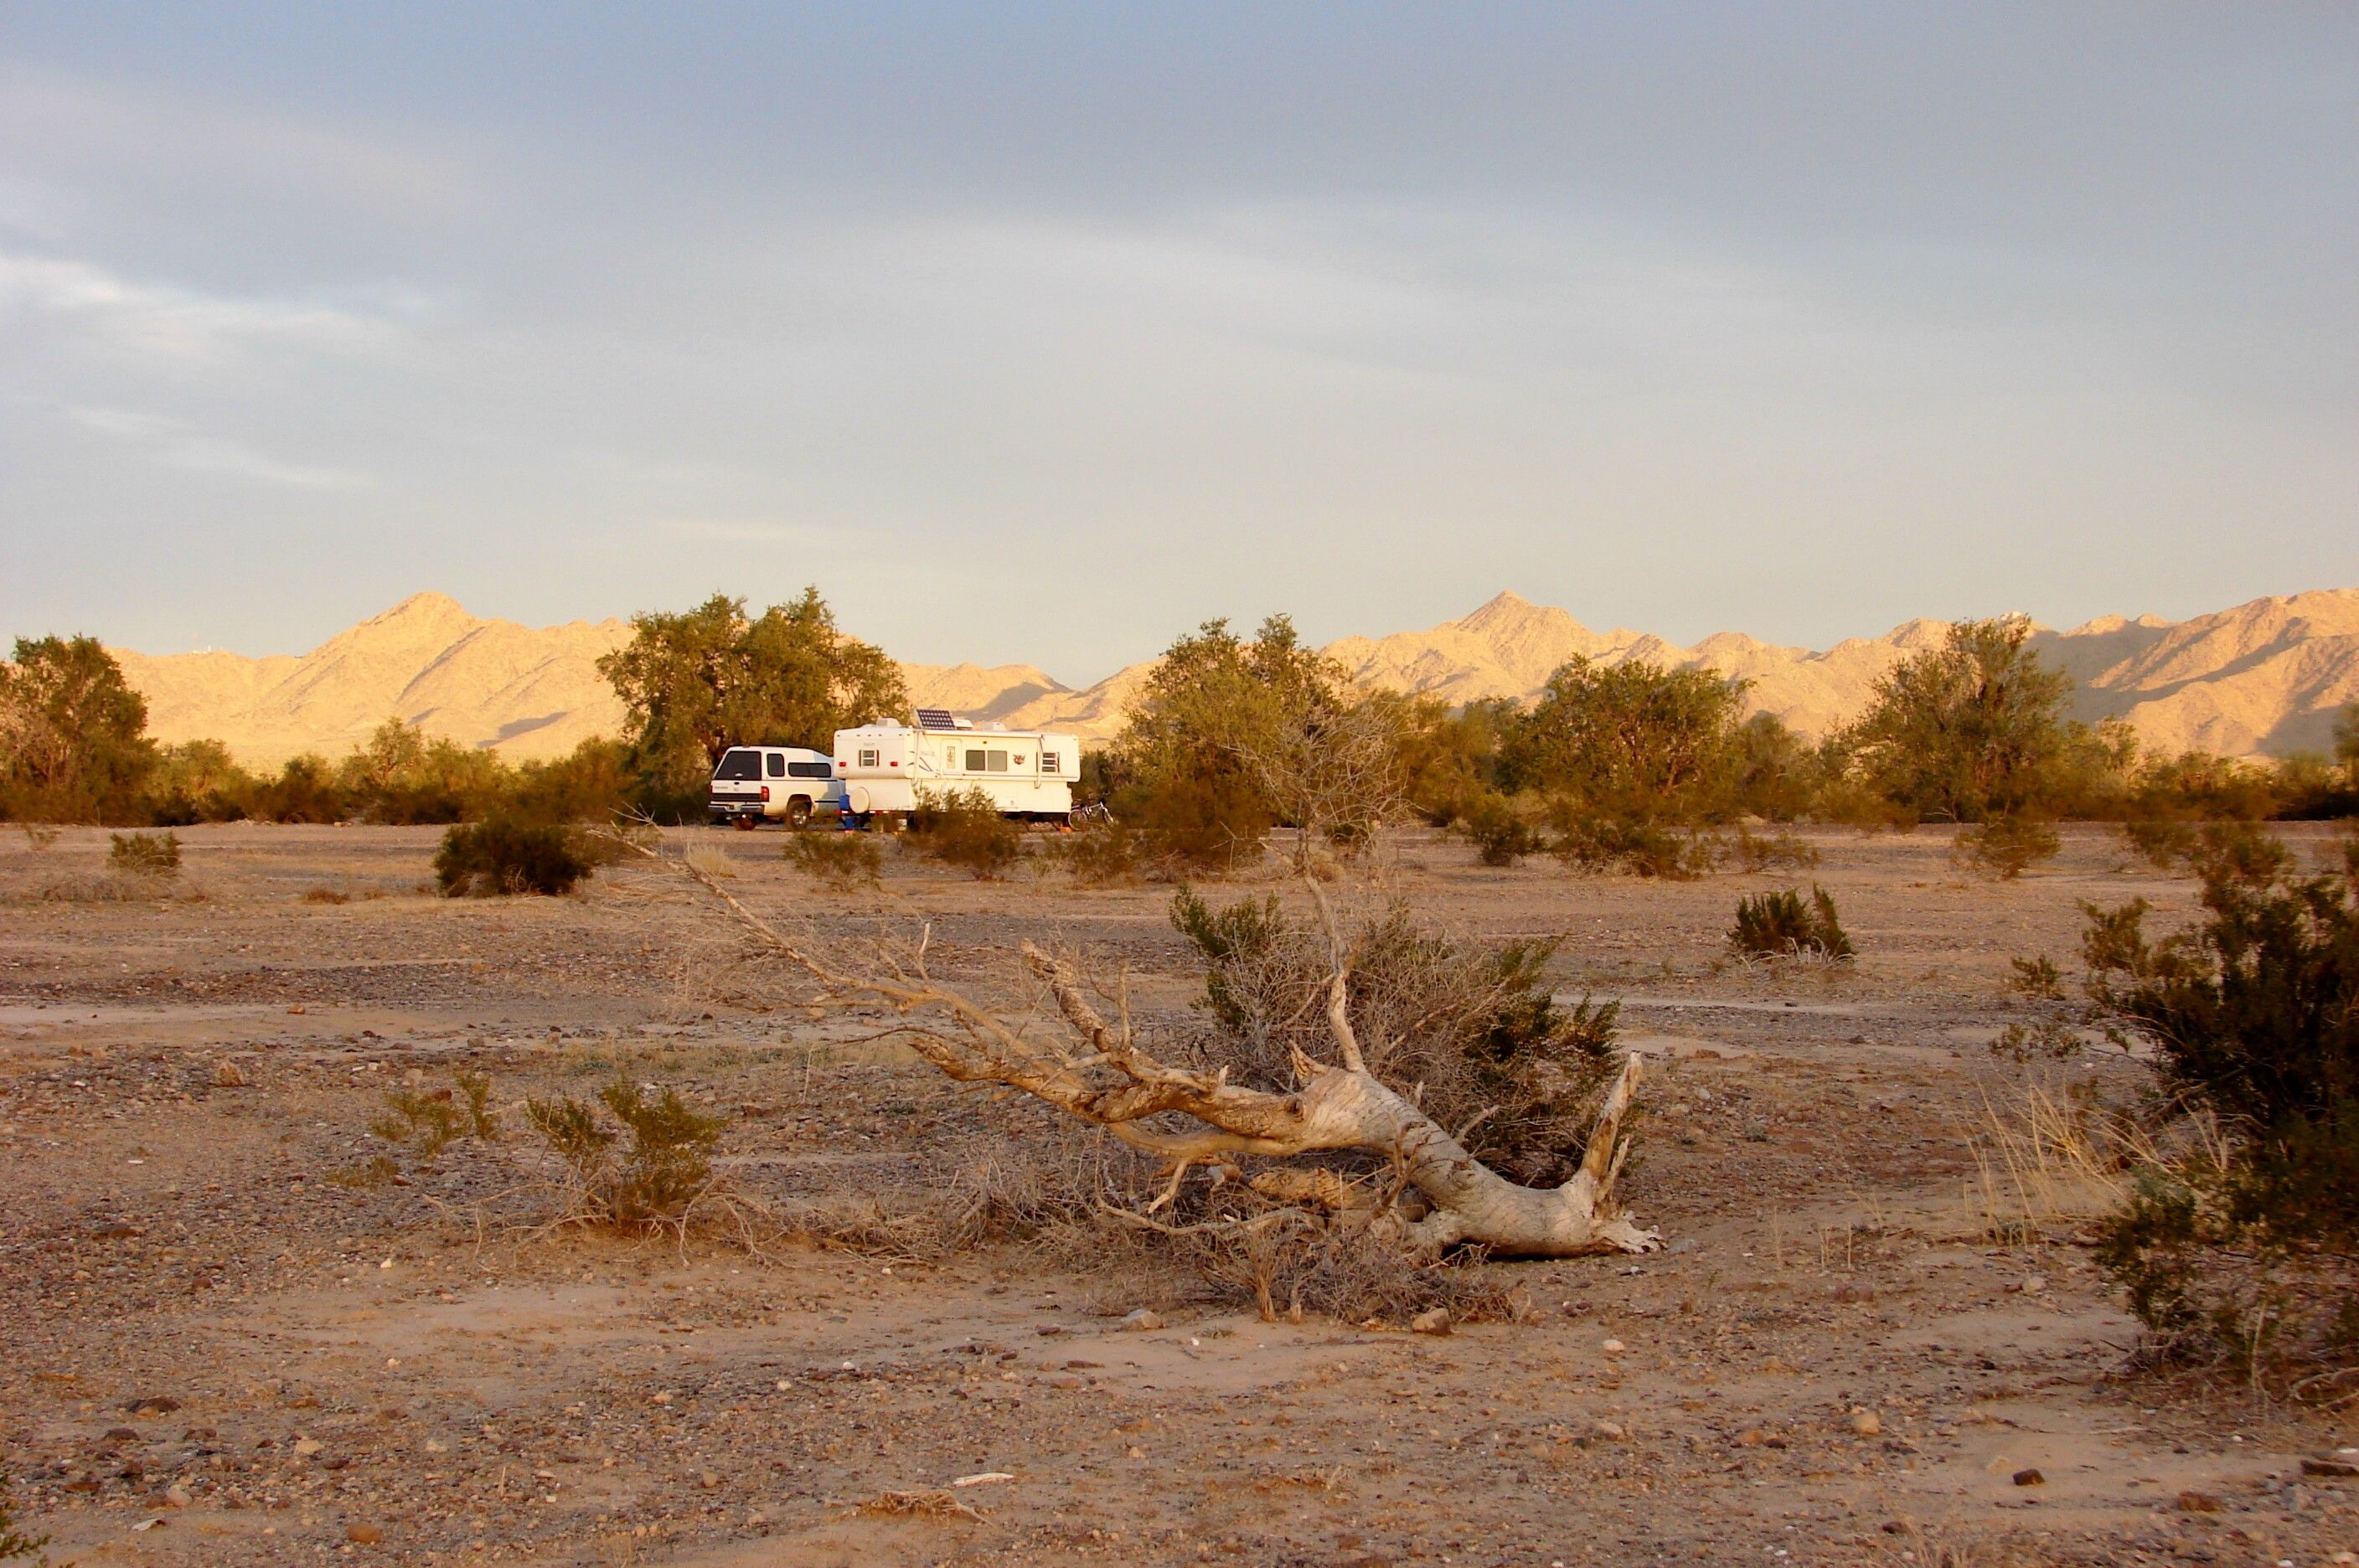 Boondock Camping In Quartzsite Arizona Quartzsite Rv